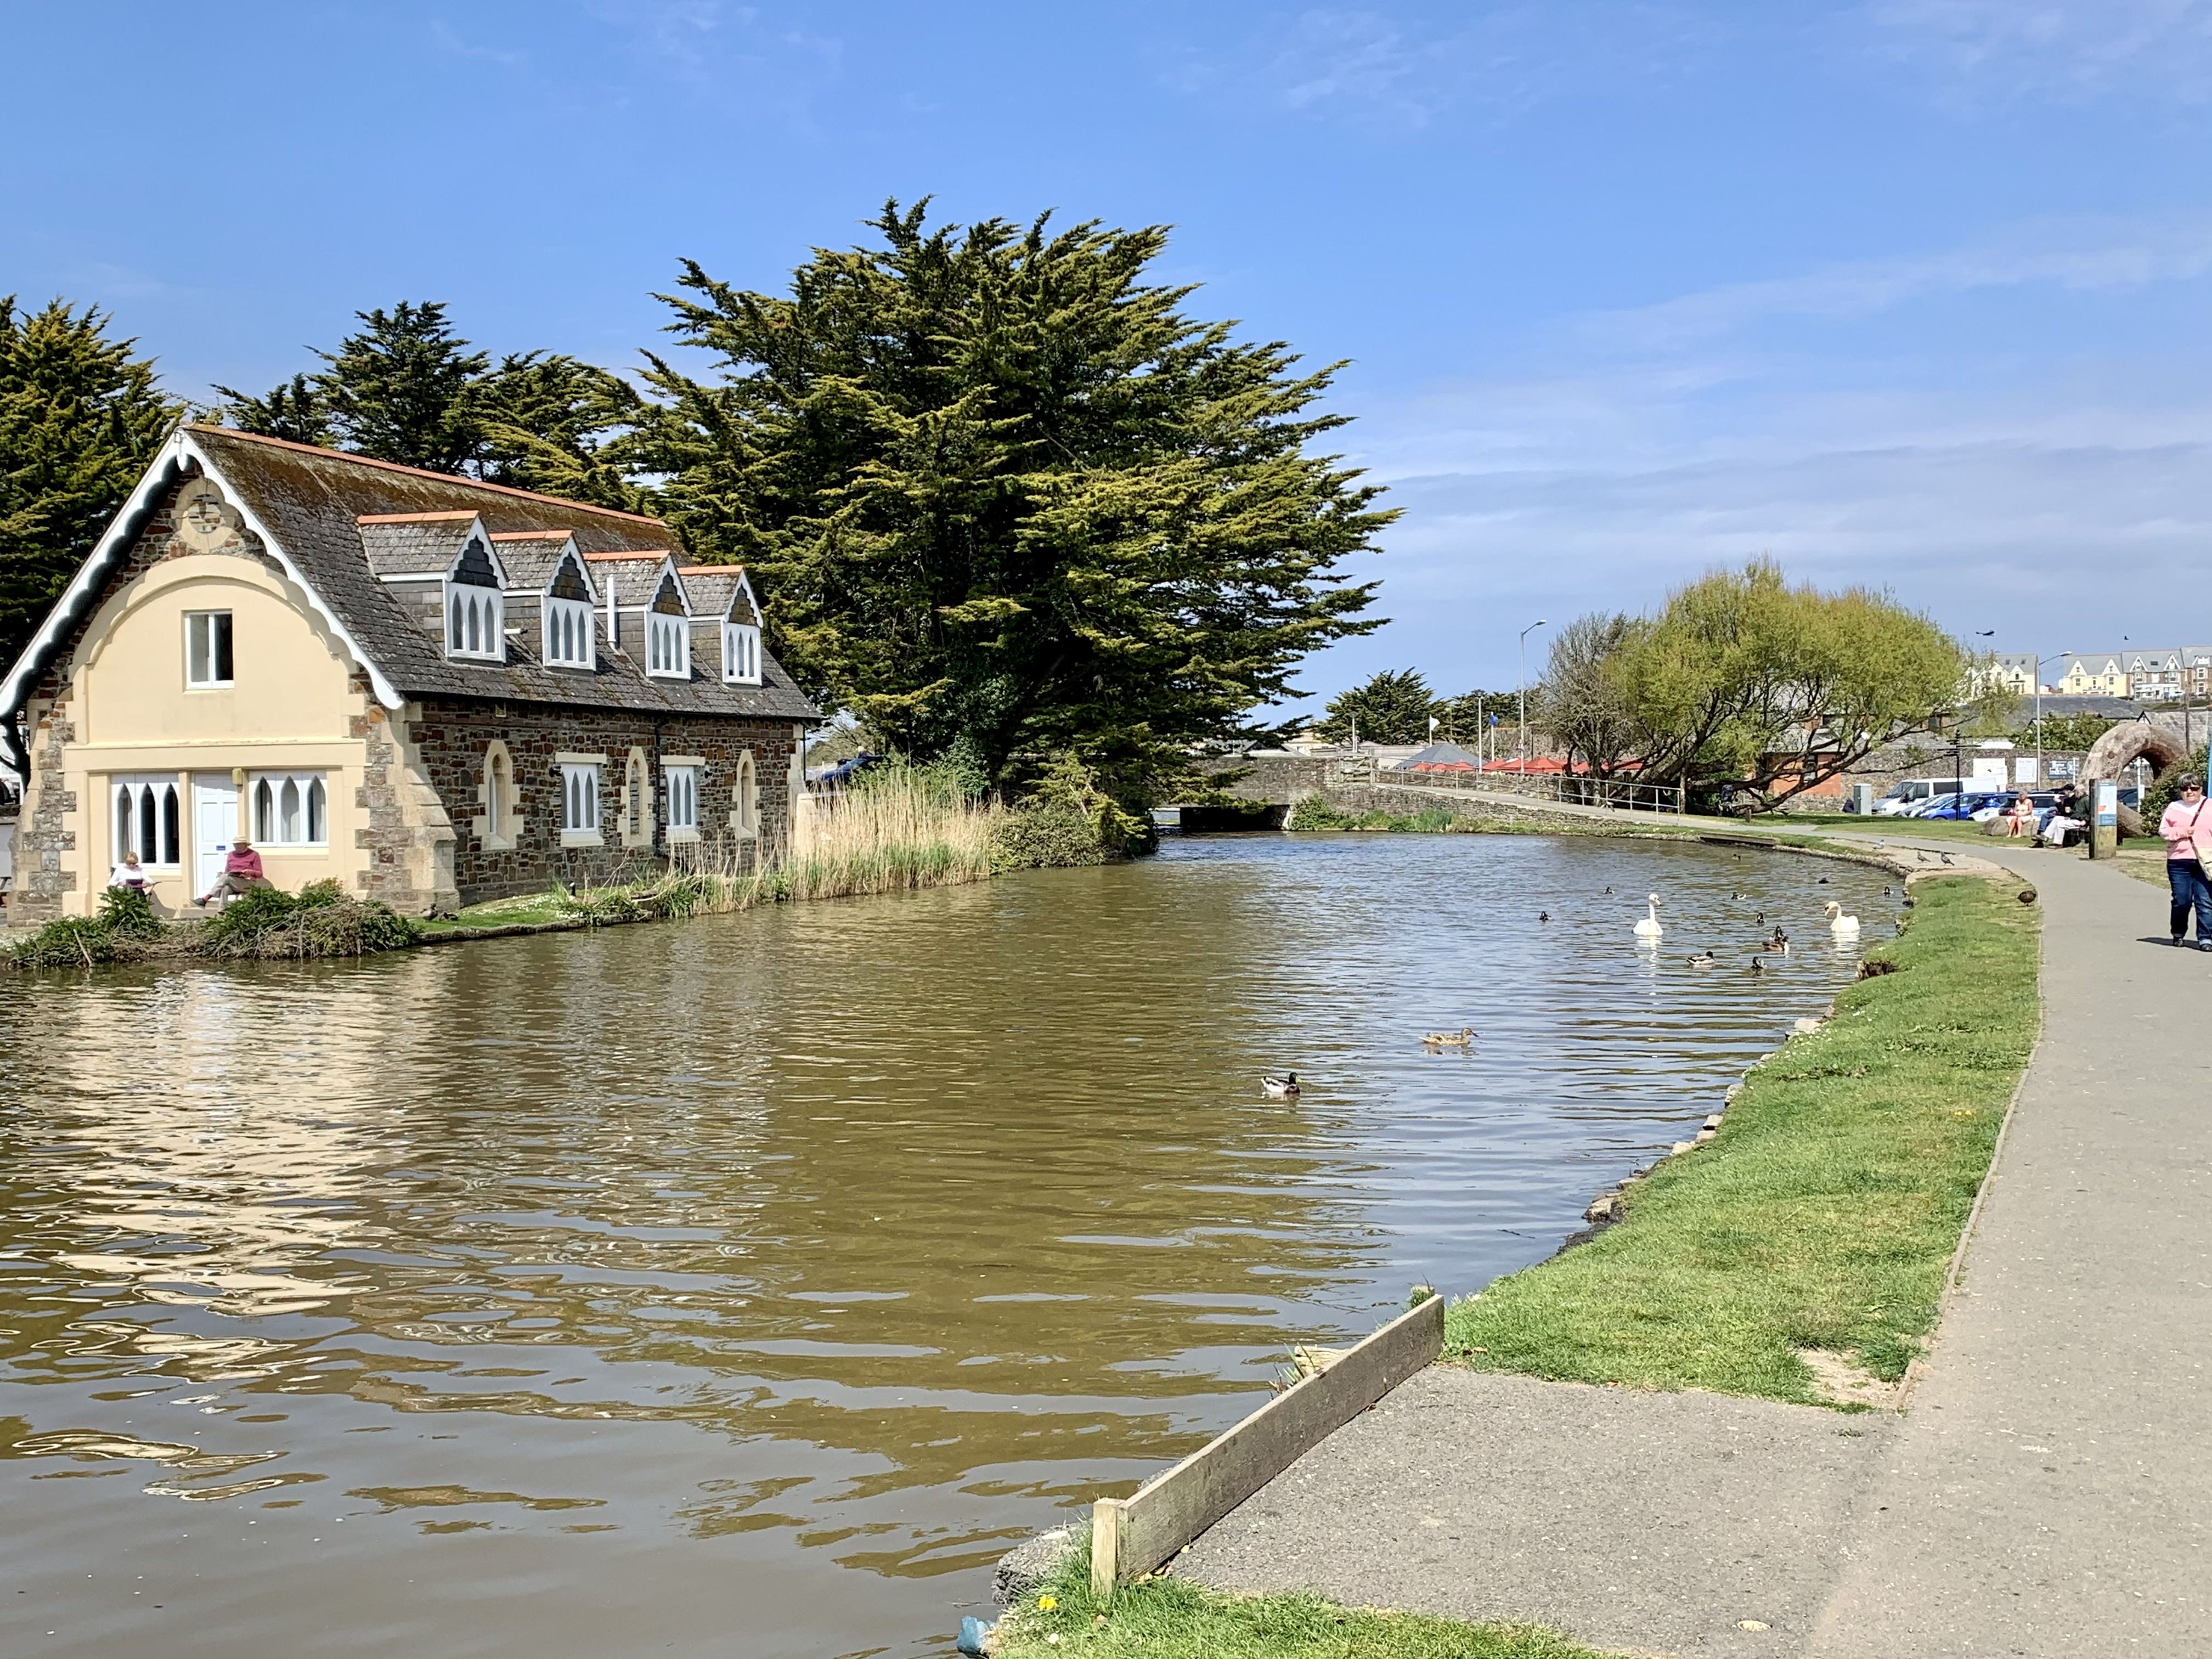 Bude Canal with it's abundance of wildlife including geese, swans and ducks